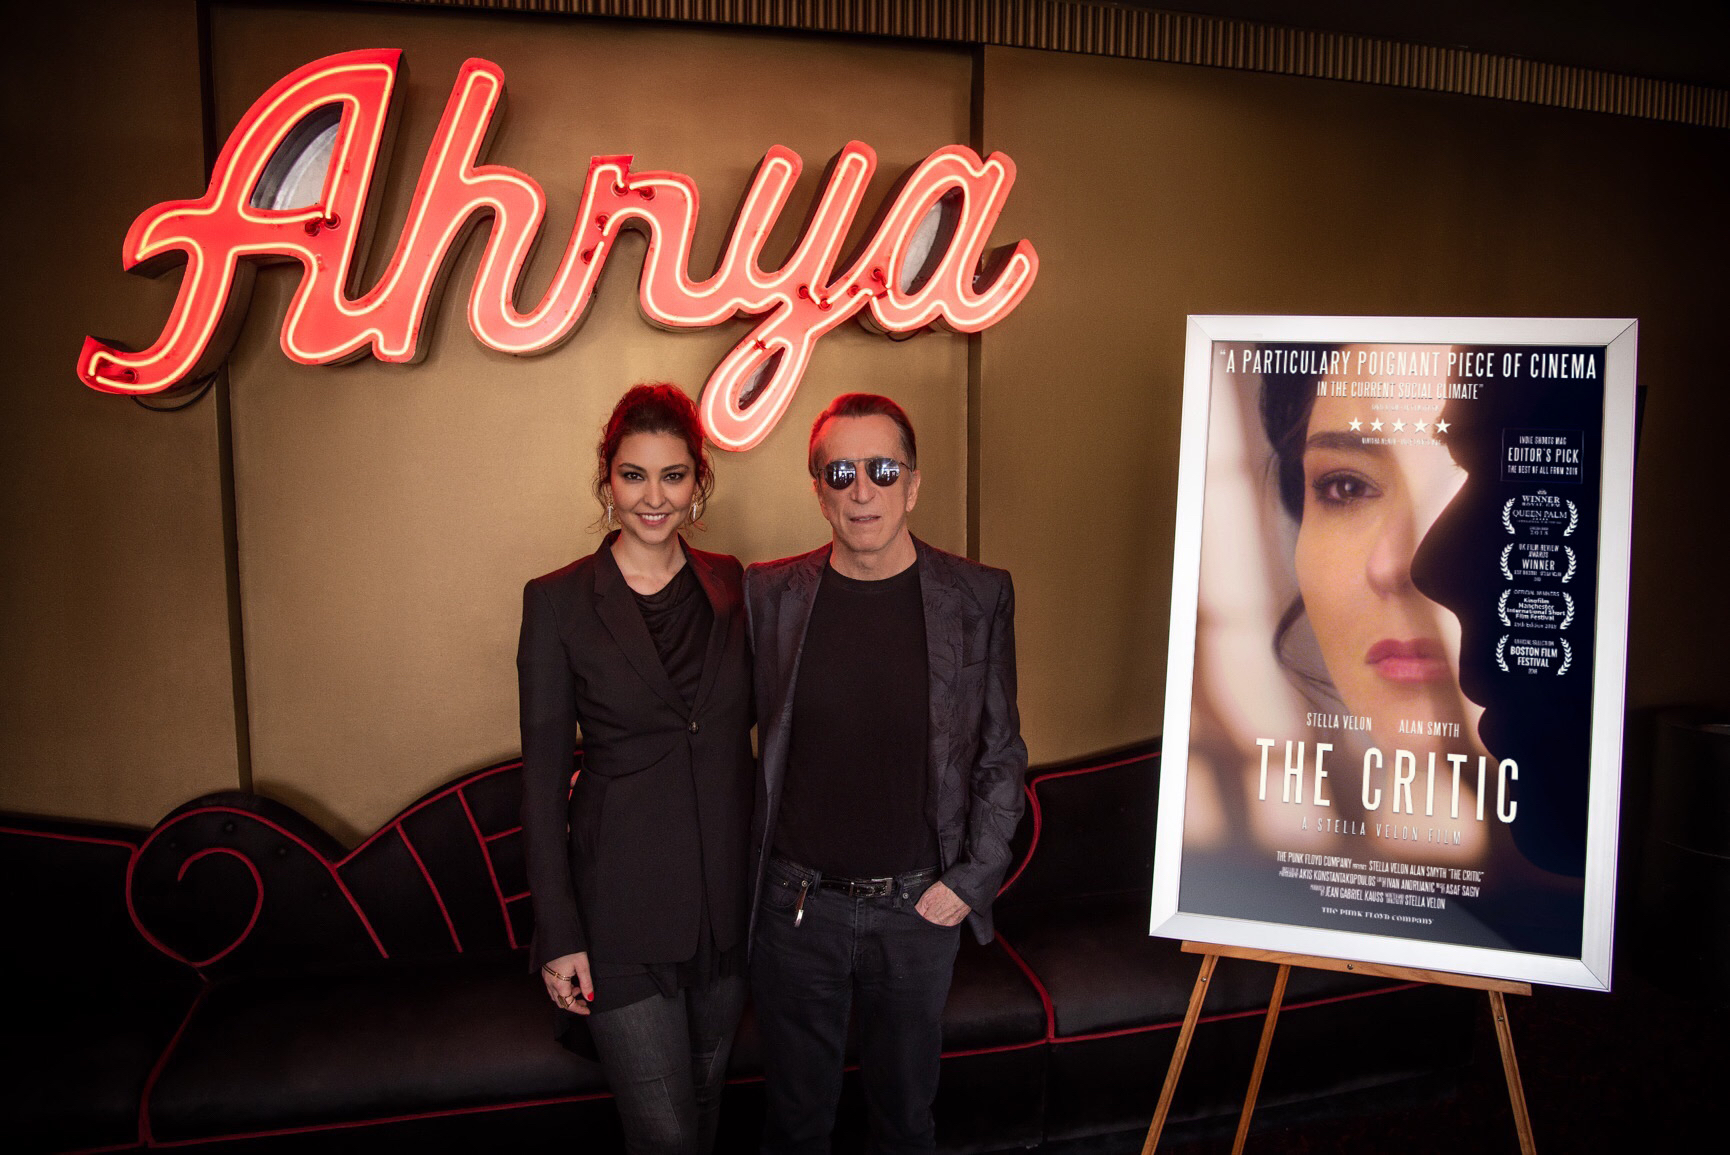 Actress/Writer/Director Stella Velon & Producer Jean Gabriel Kauss presenting 'The Critic' at Ahrya Fine Arts  Photo by: Eddie Ruvalcaba